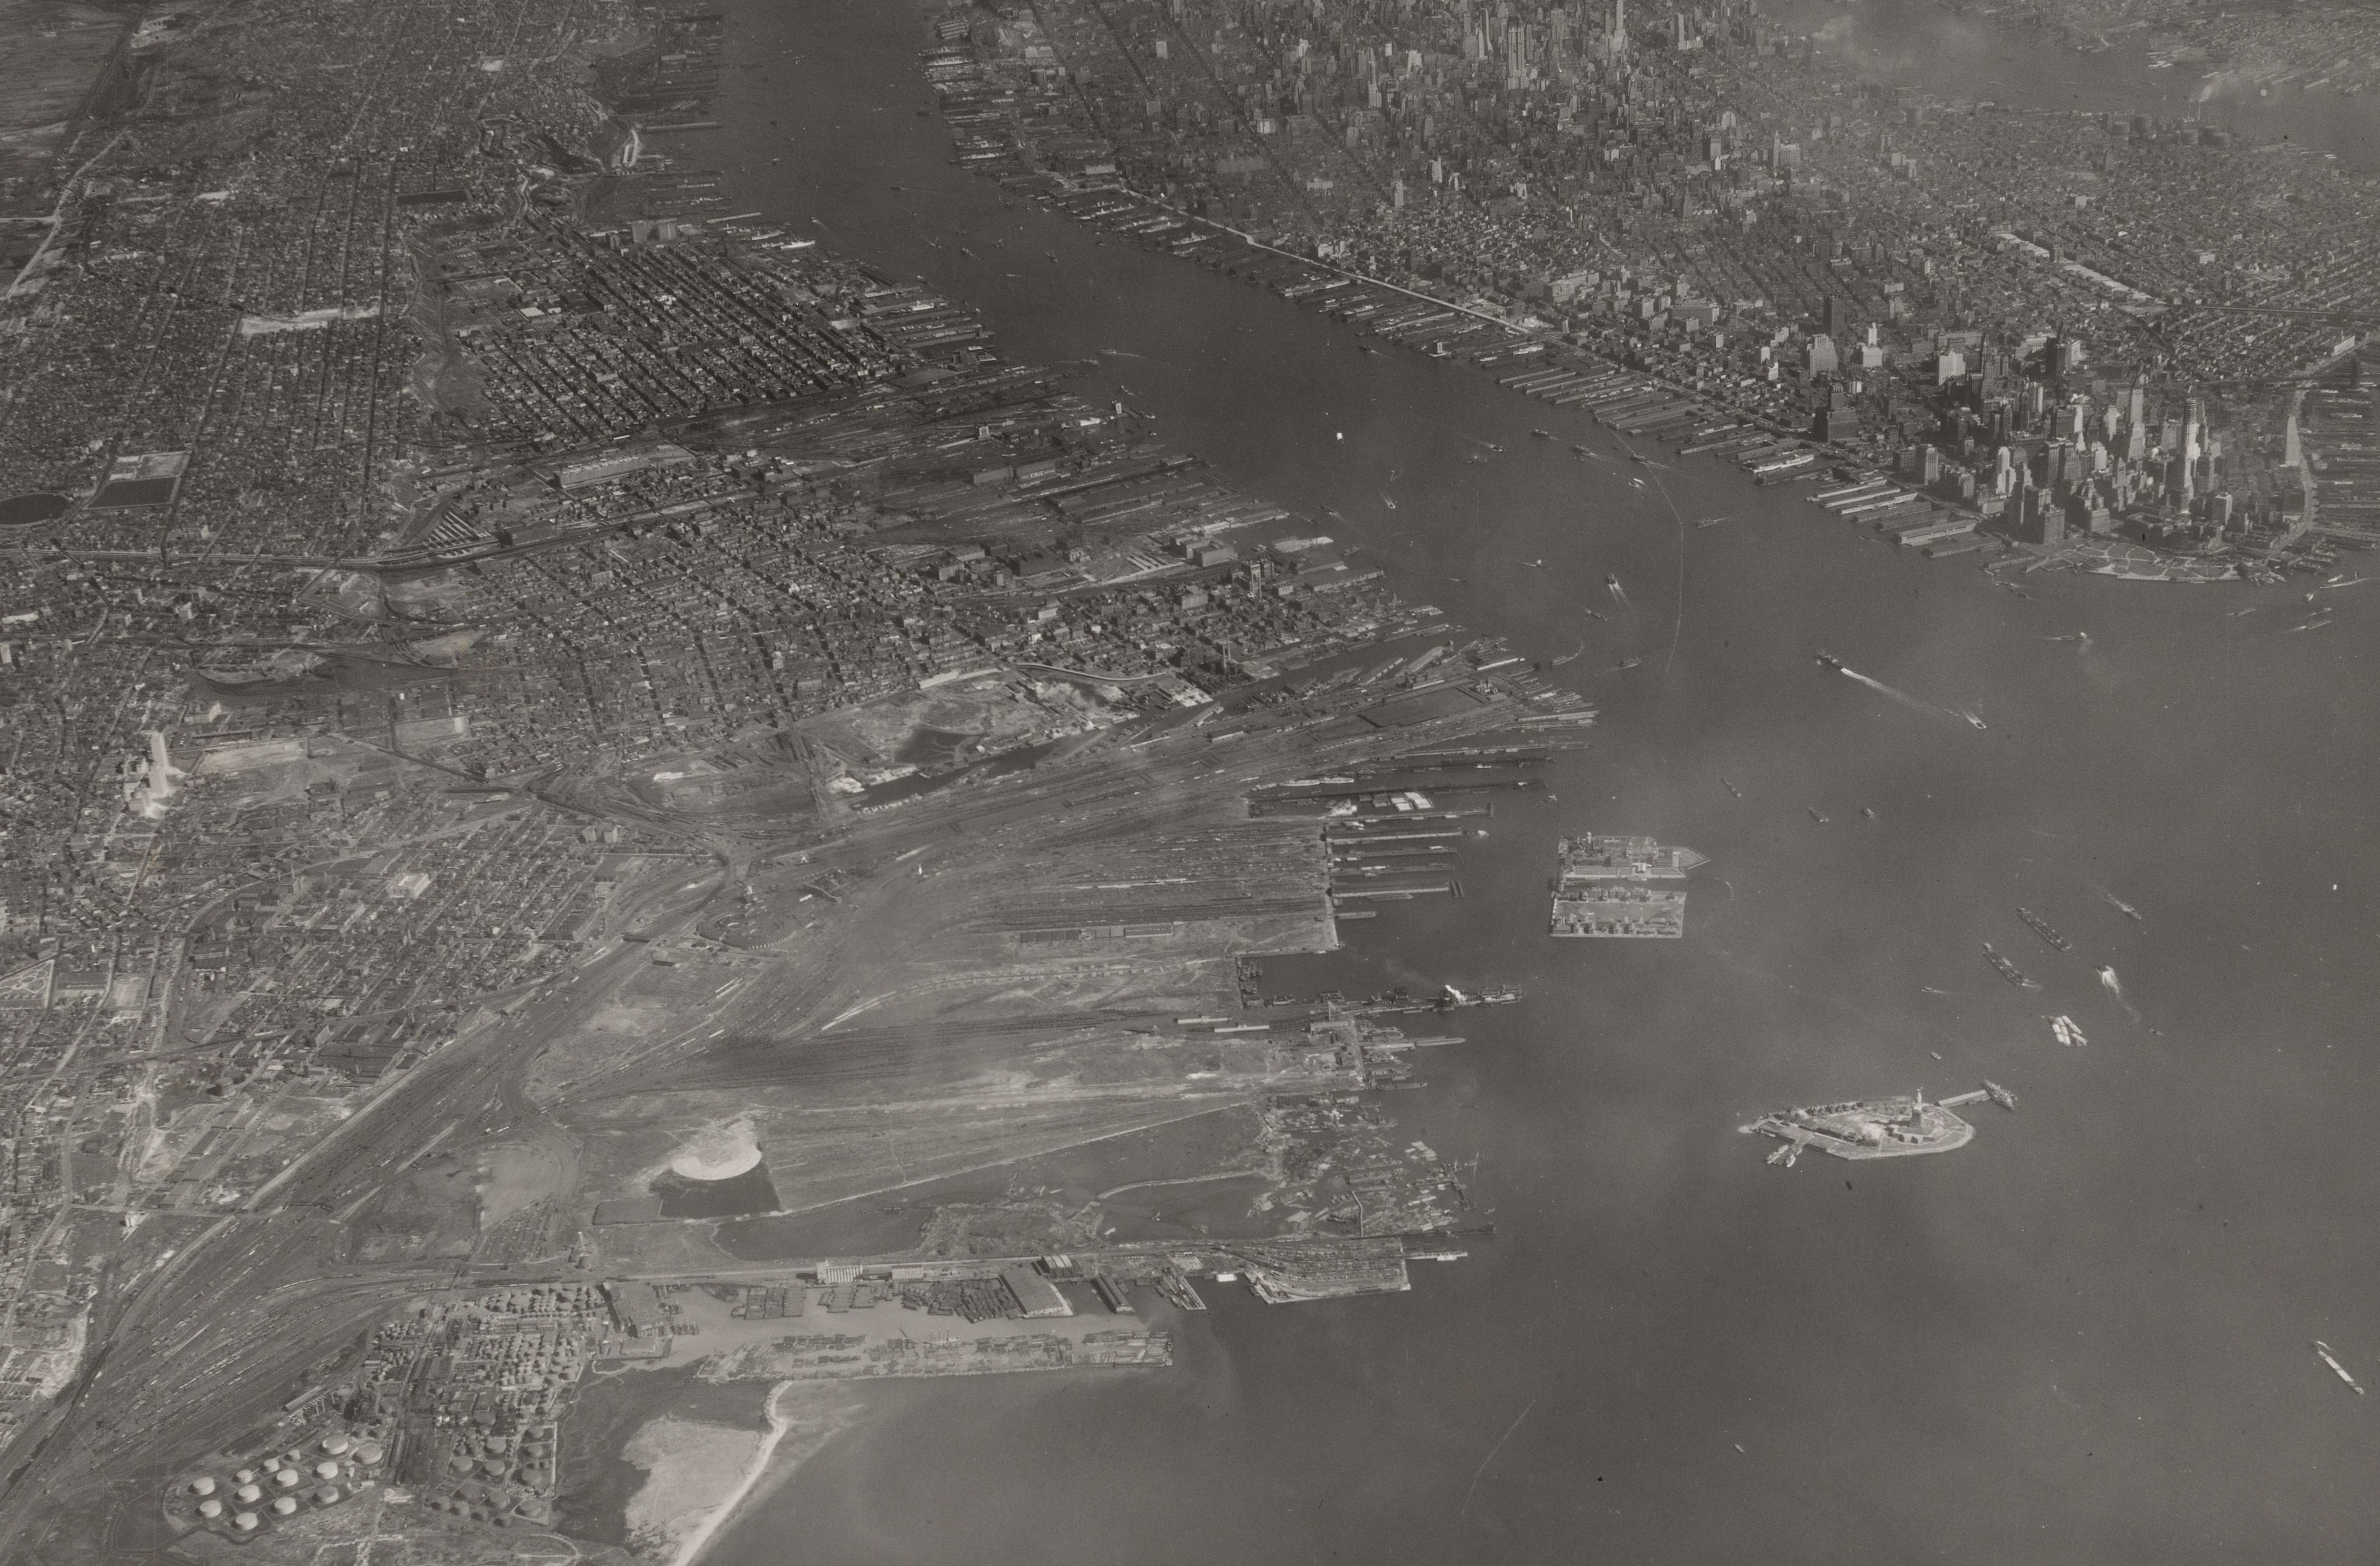 Airscape of Upper Bay of New York Harbor on Jersey City side